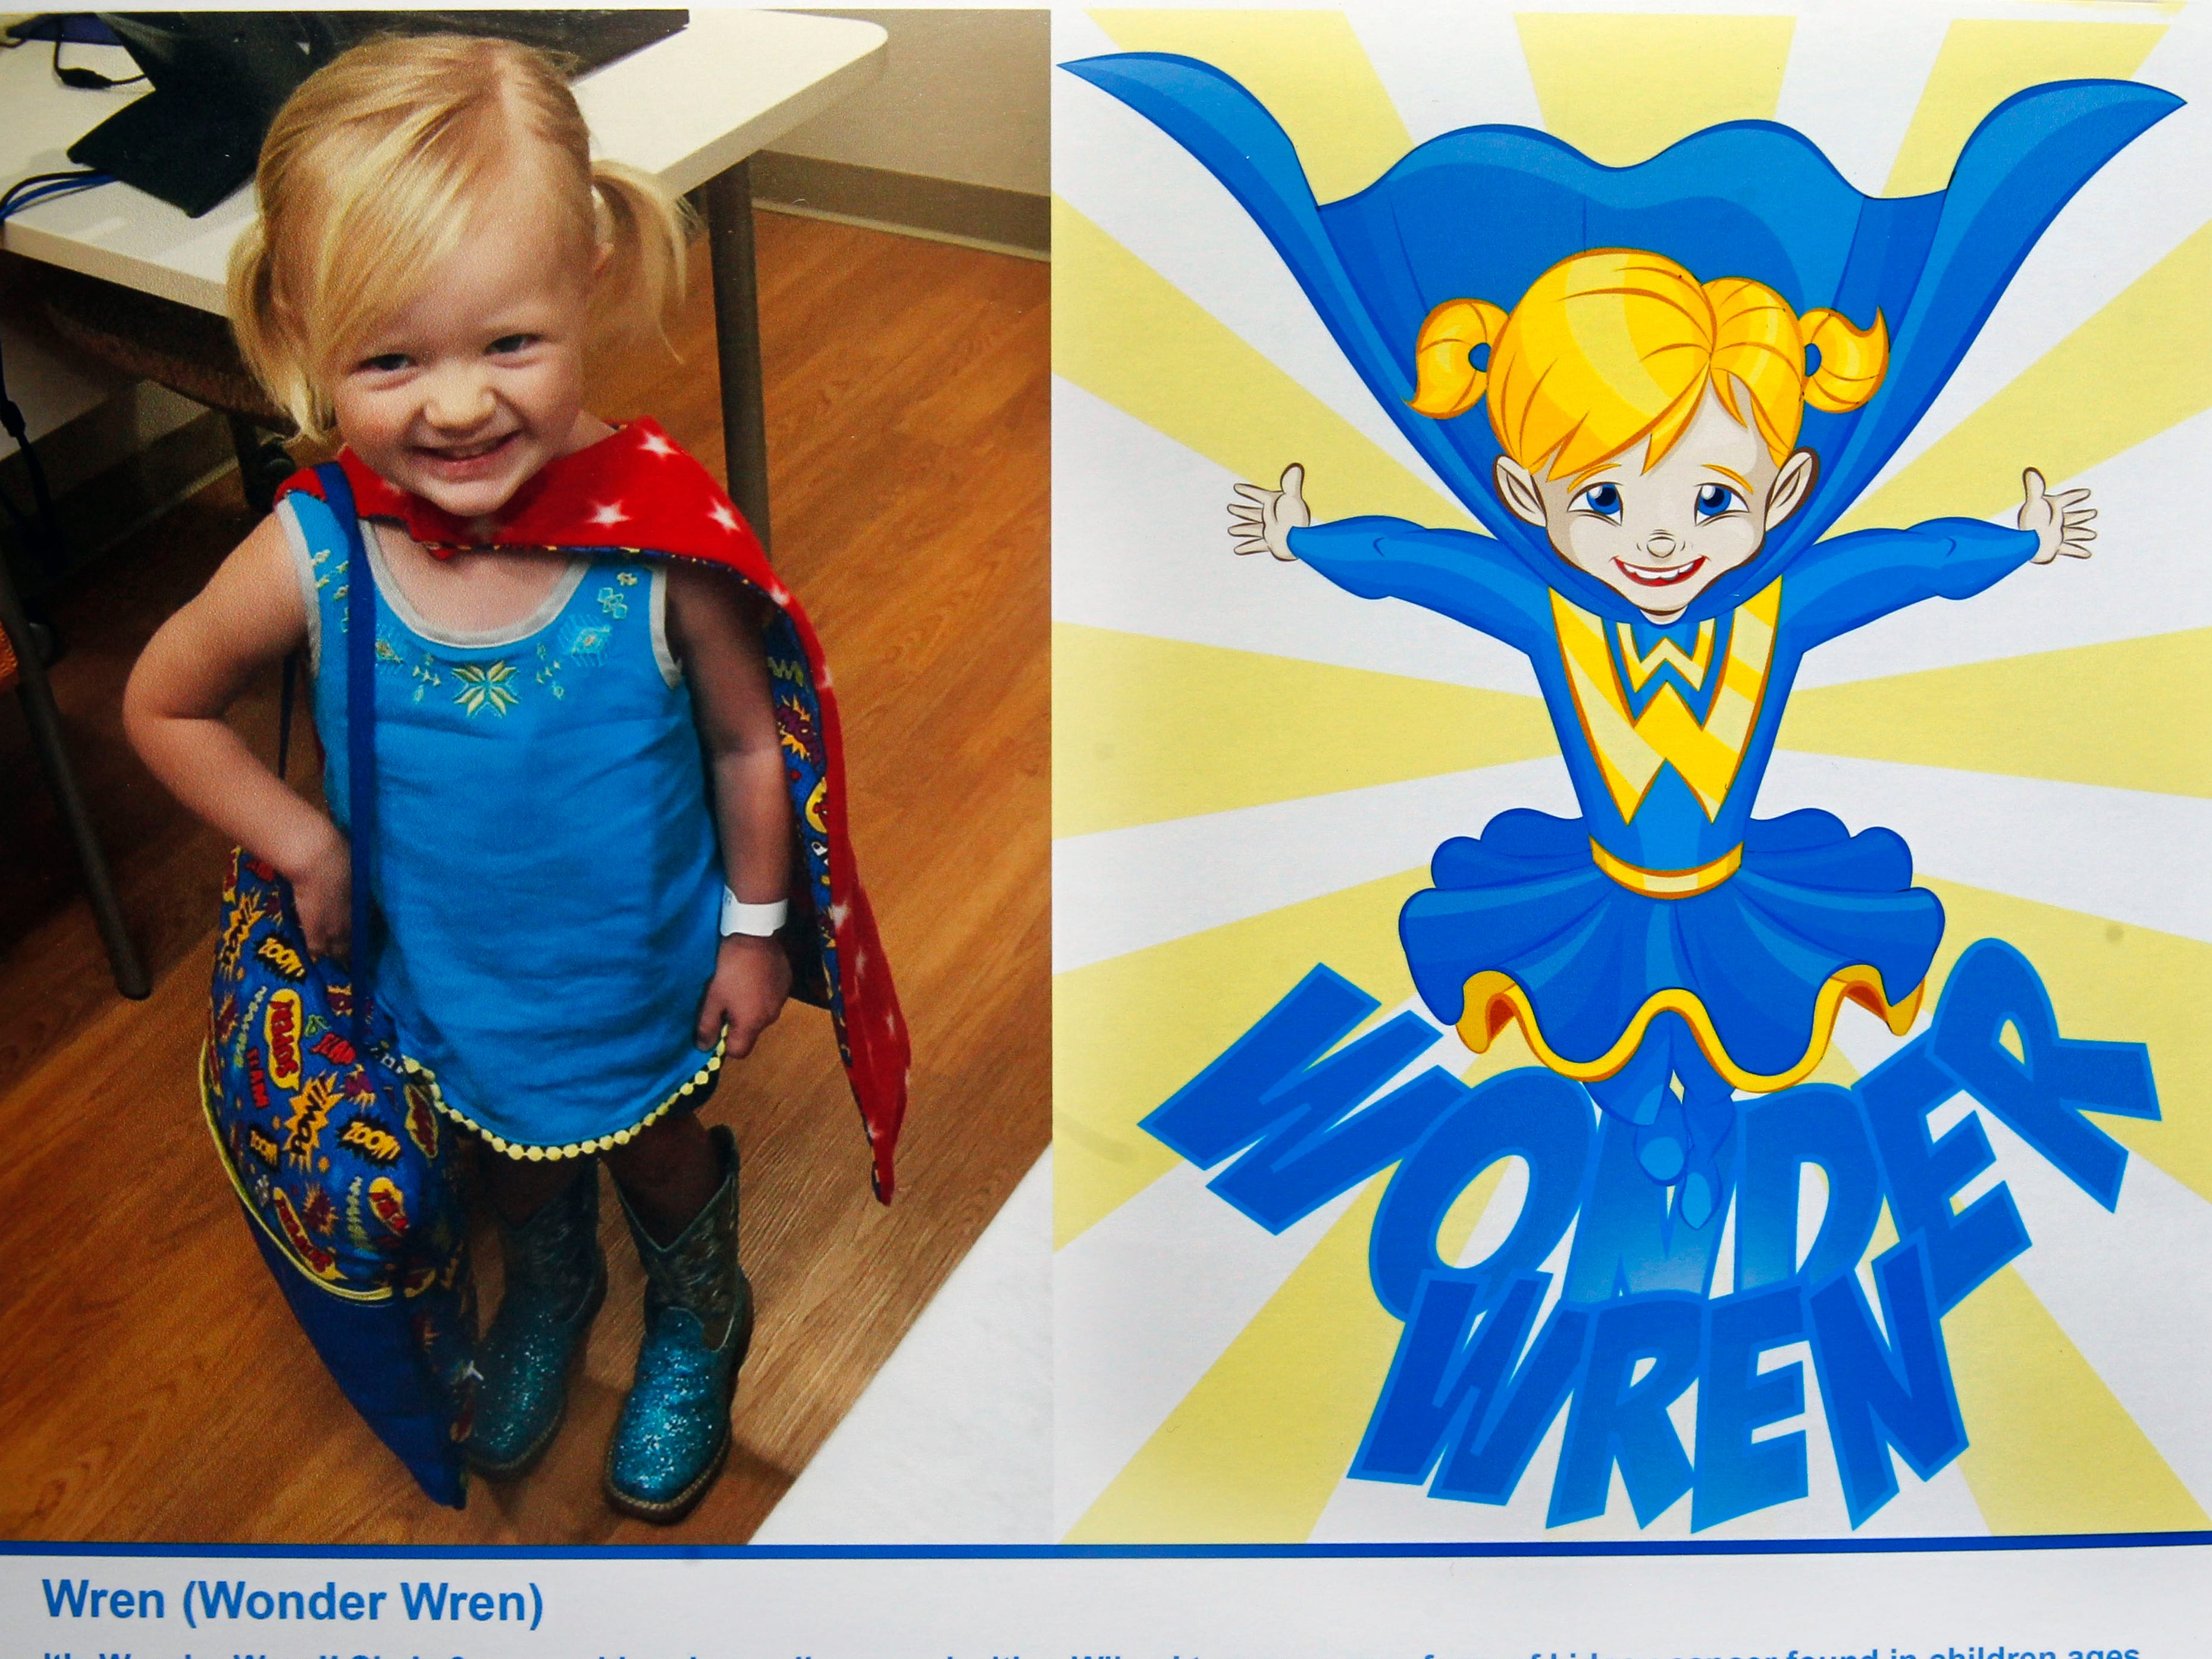 Wonder Wren is a superhero identity created by Bryan Dyer, owner of You Are the Hero.